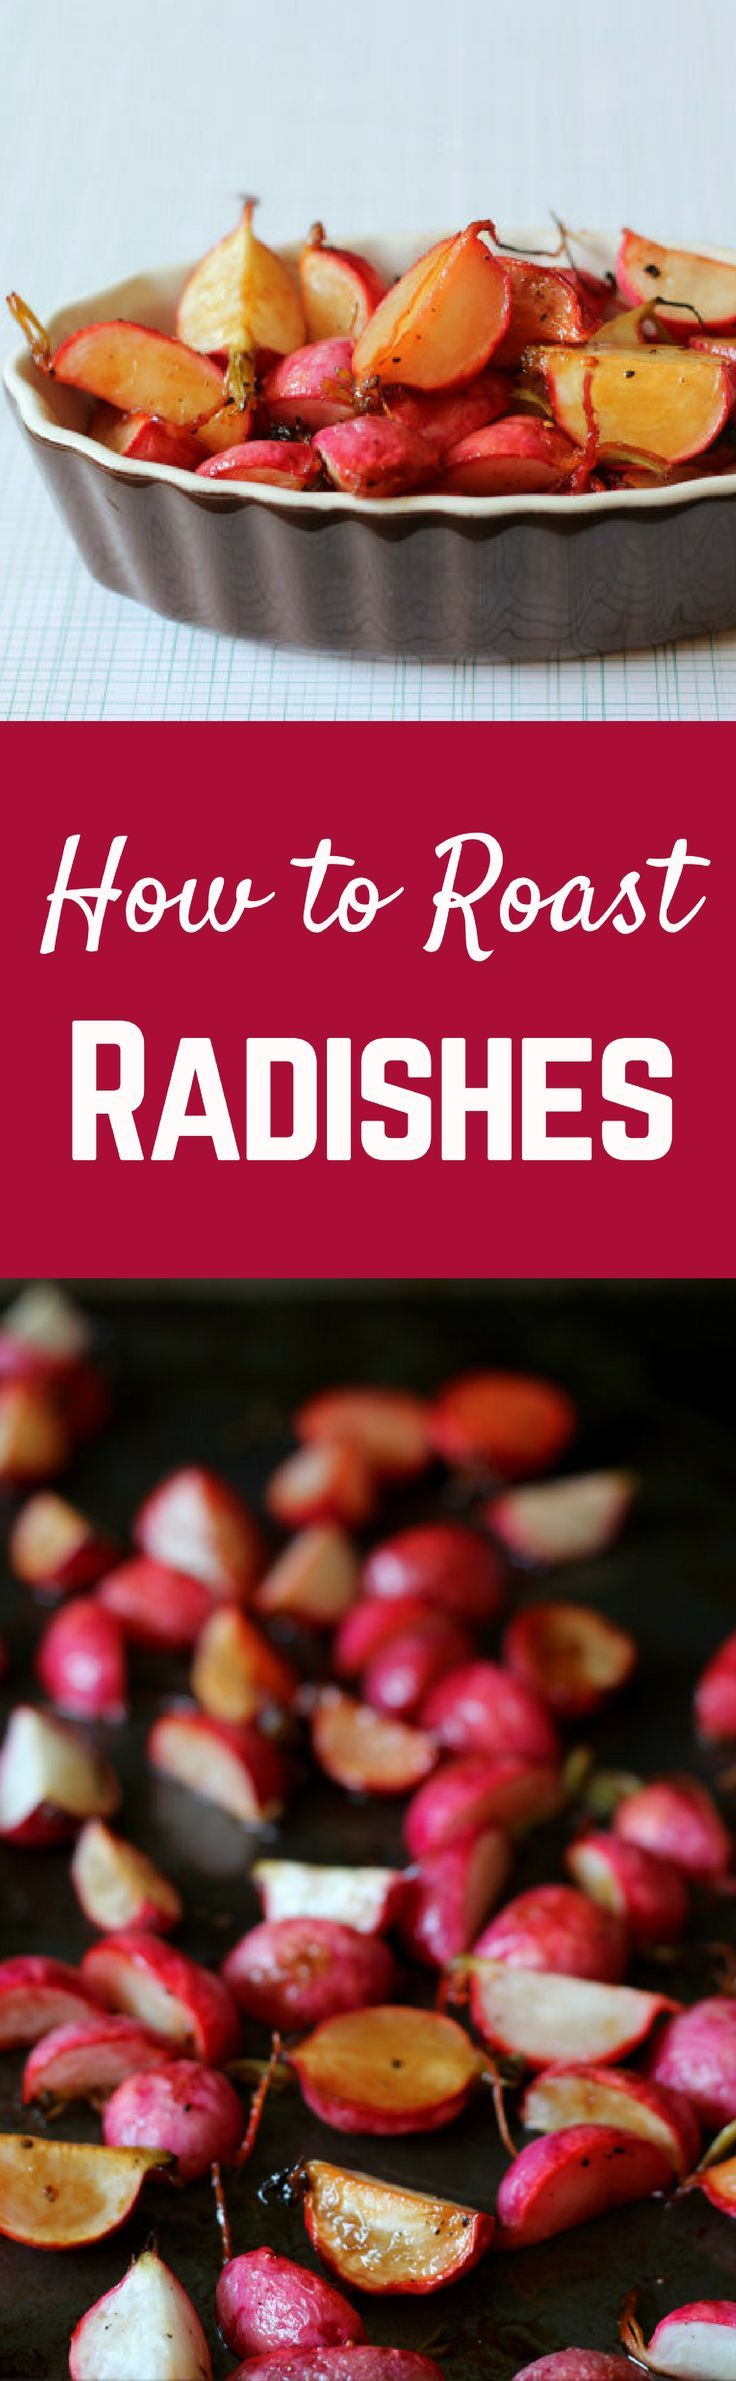 How to Roast Radishes on http://RachelCooks.com